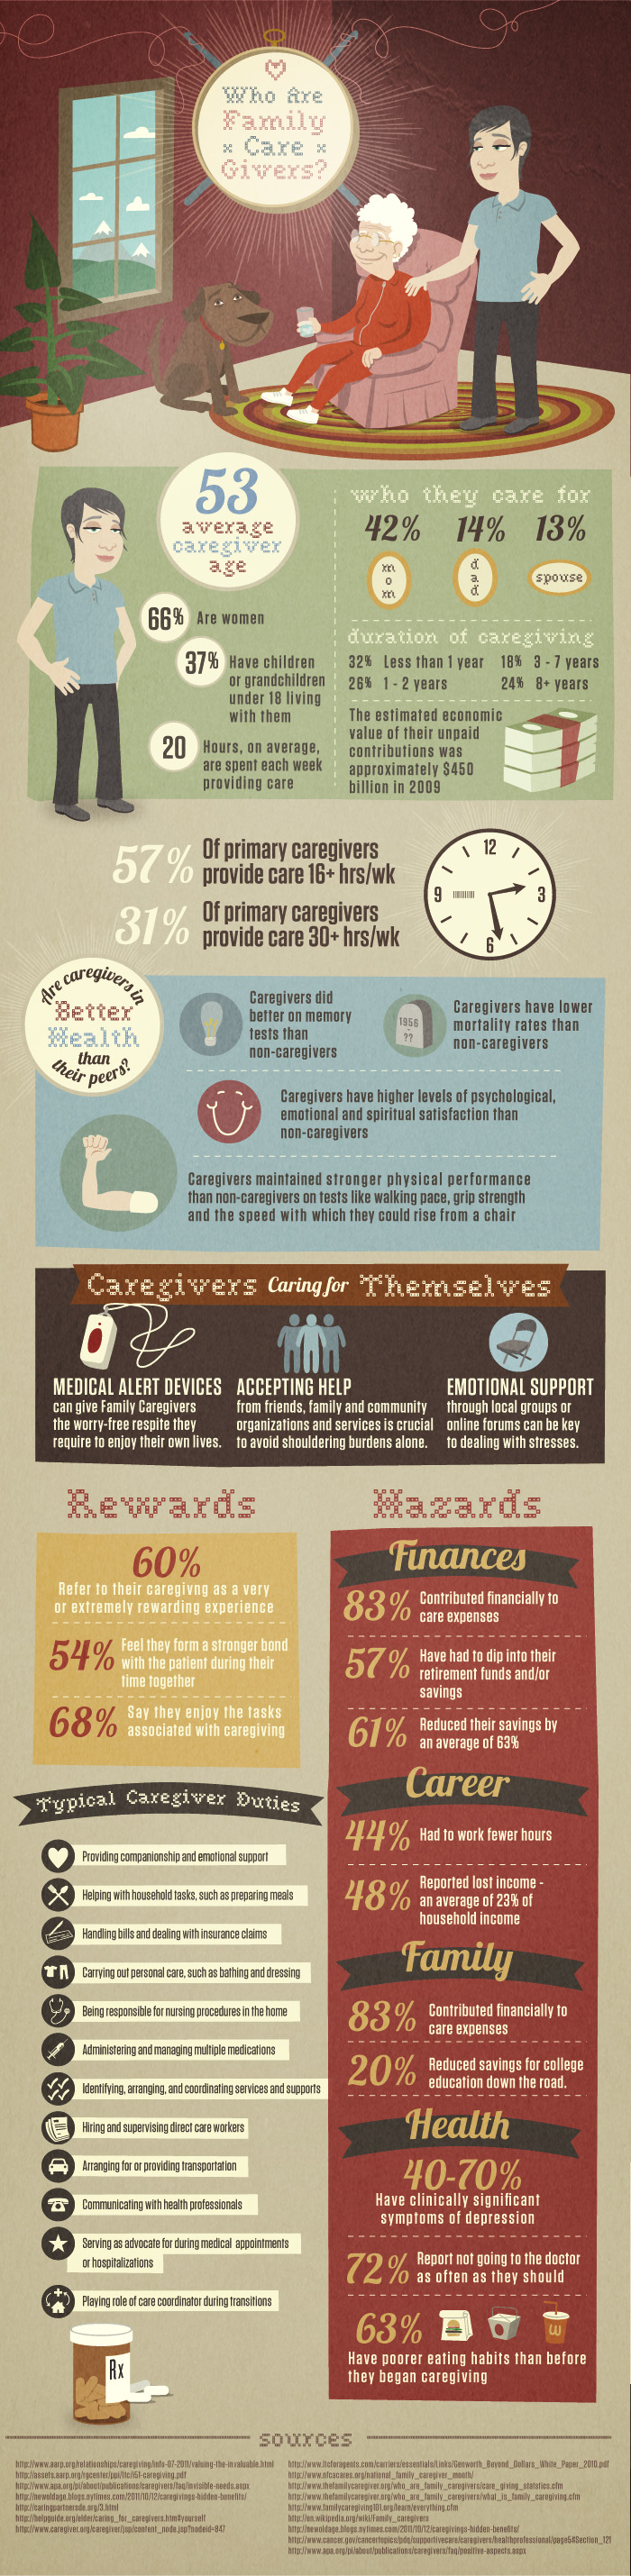 Family Care Giver Facts and Stats